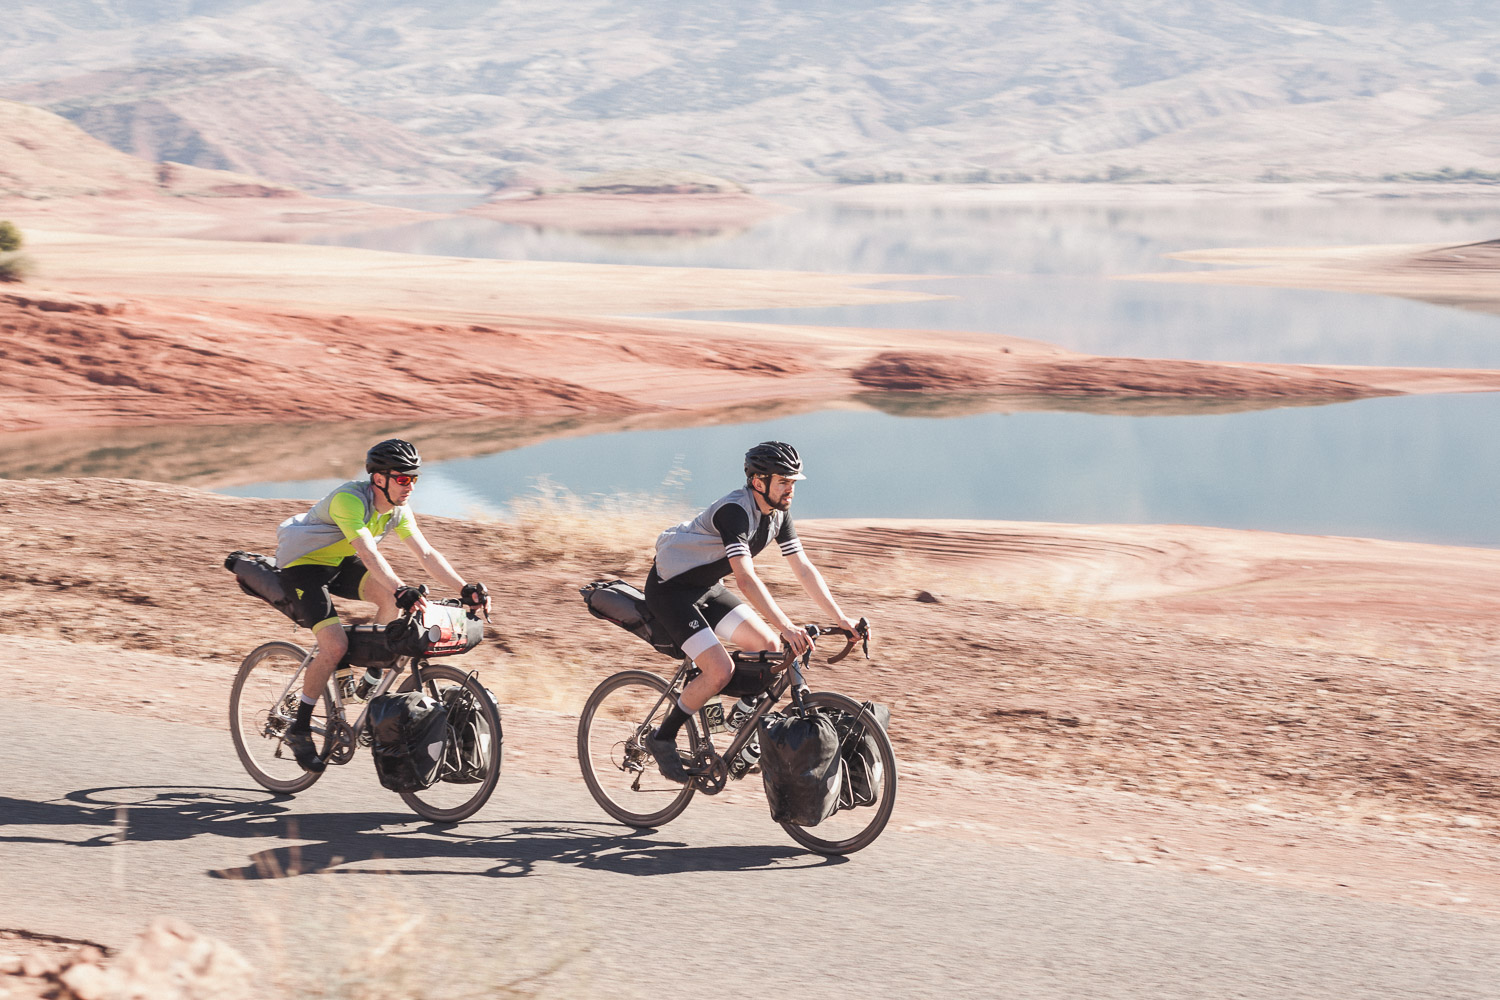 8bar bikes adventures morocco gravel 20151215 0030 bearbeitet - 8bar Adventures - Morocco - High Atlas - Part 2/2